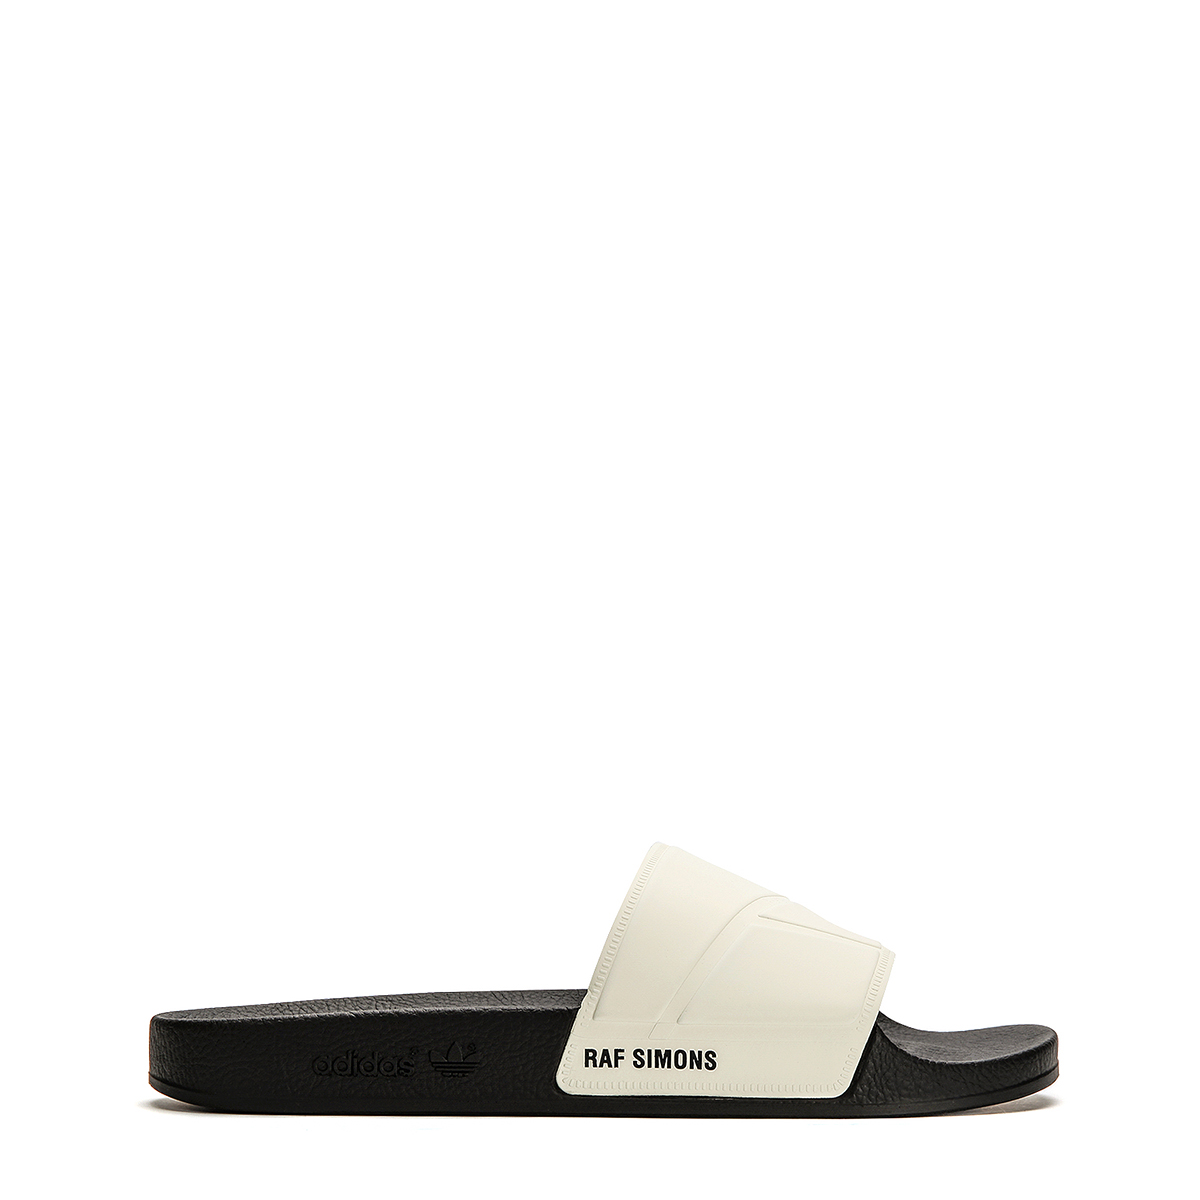 Adidas x Raf Simons Adilette Bunny Slide Sandals BY9814 Cream White Core Black by